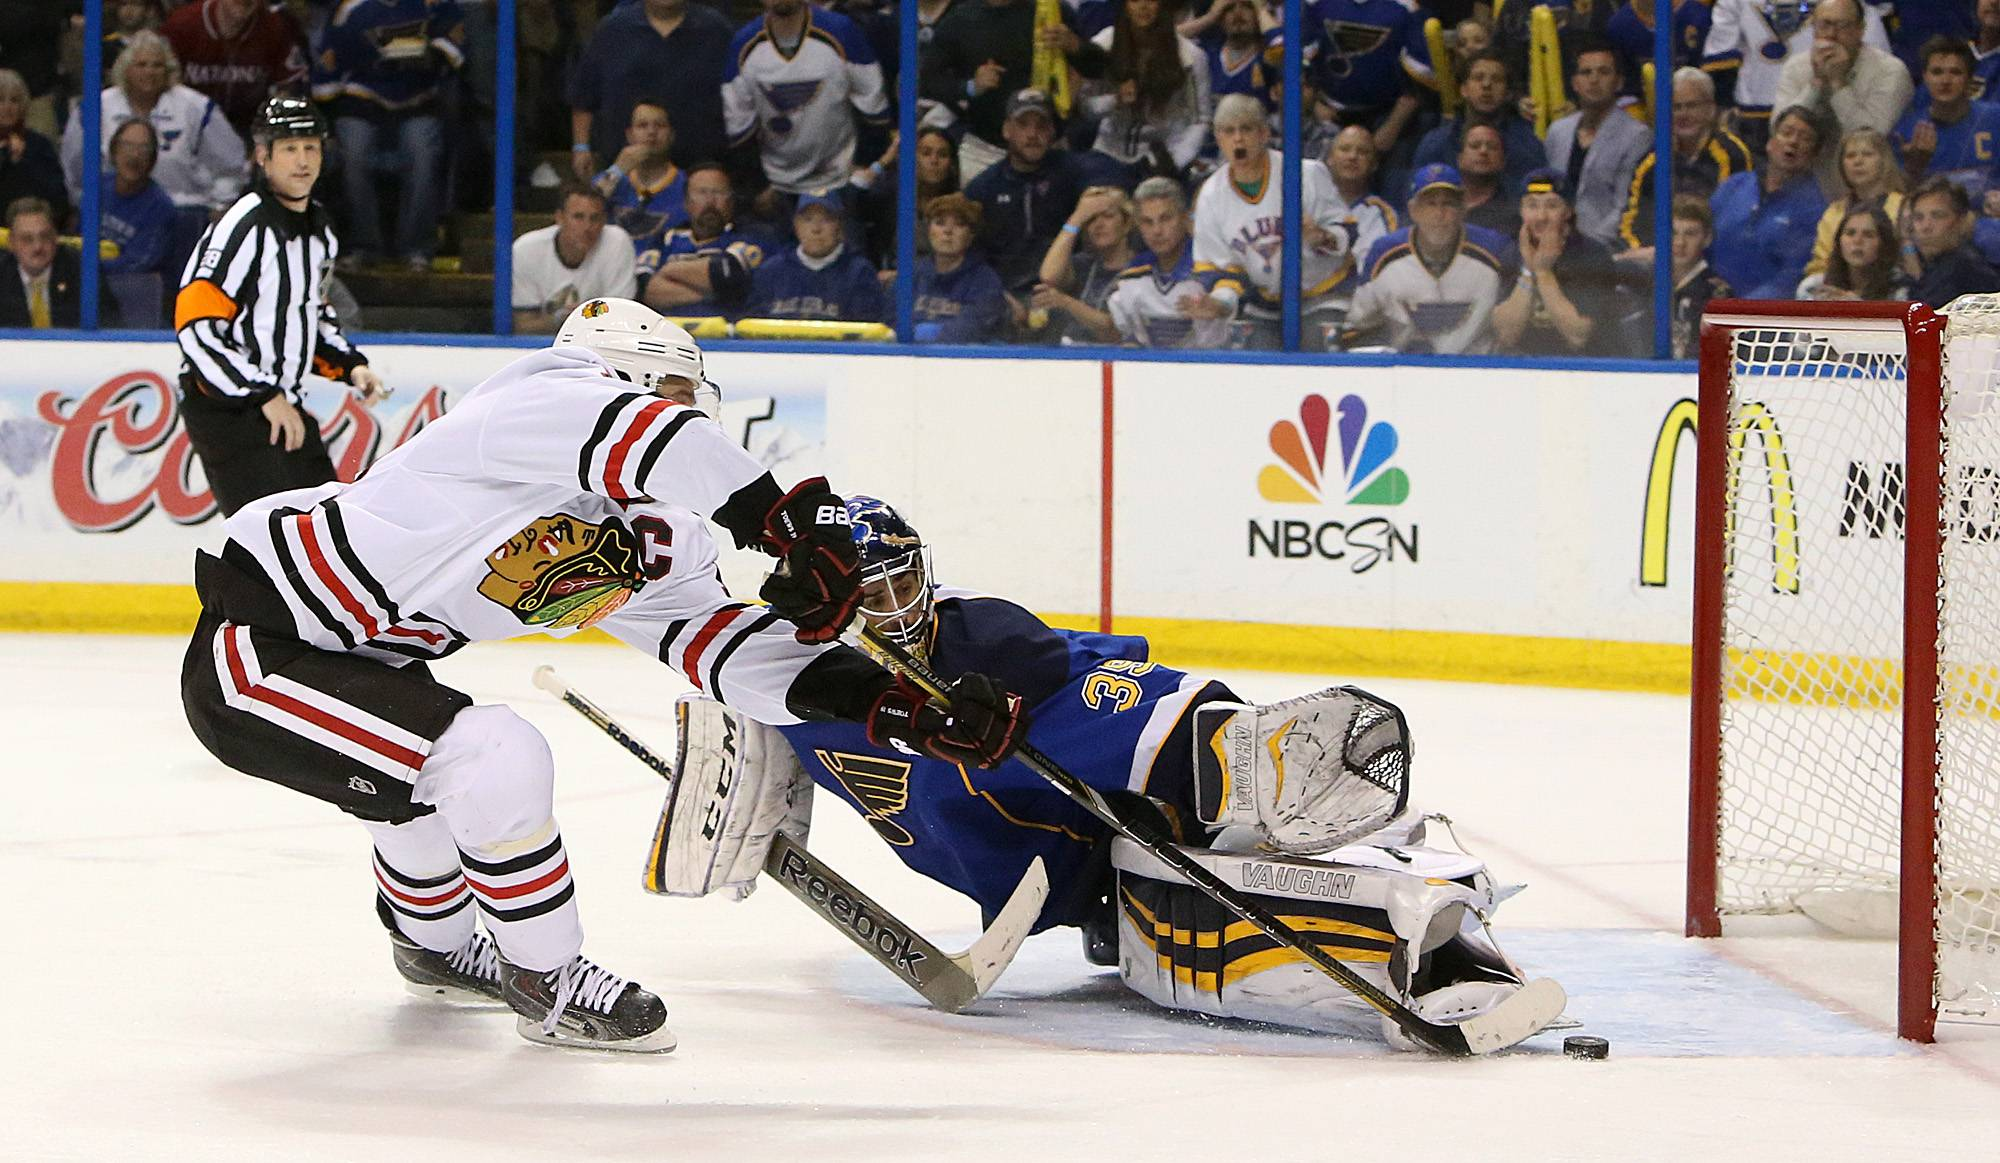 Chicago Blackhawks center Jonathan Toews (left) scores the game-winning goal in overtime past St. Louis Blues goaltender Ryan Miller.